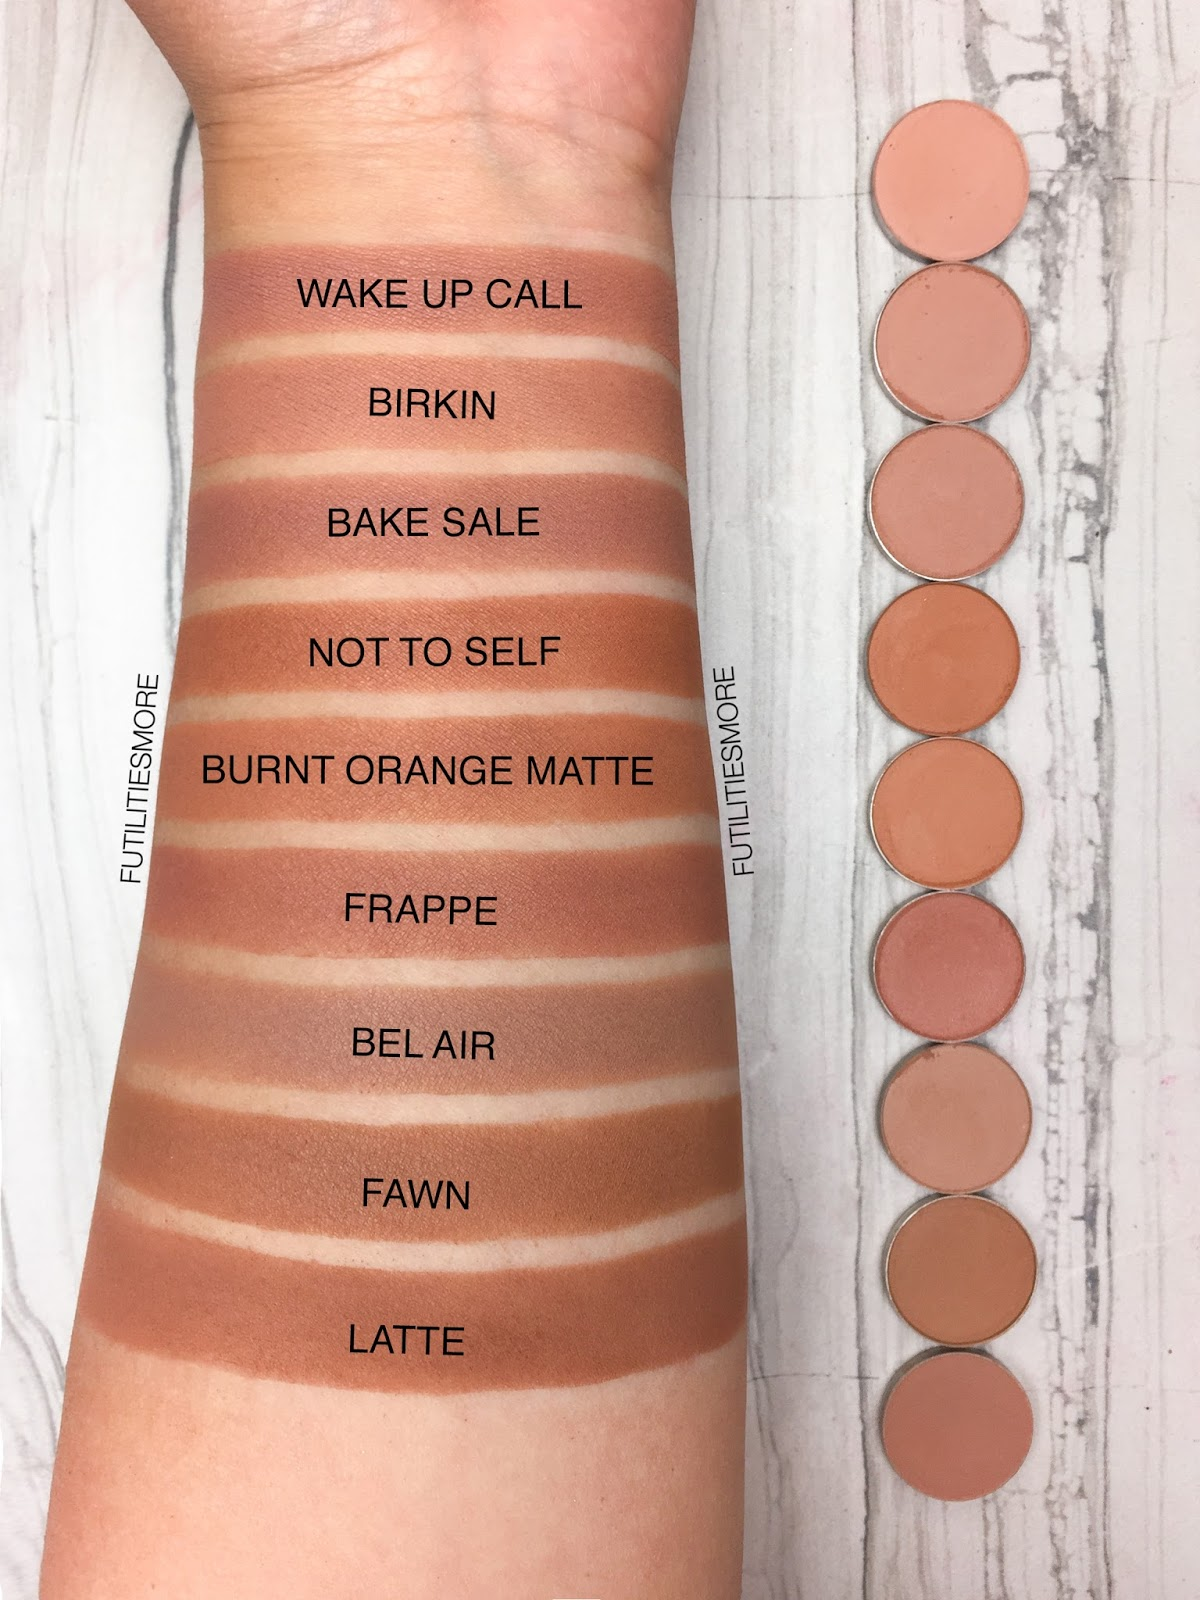 TRANSITION SHADES Medium Browns: Colourpop VS Anastasia